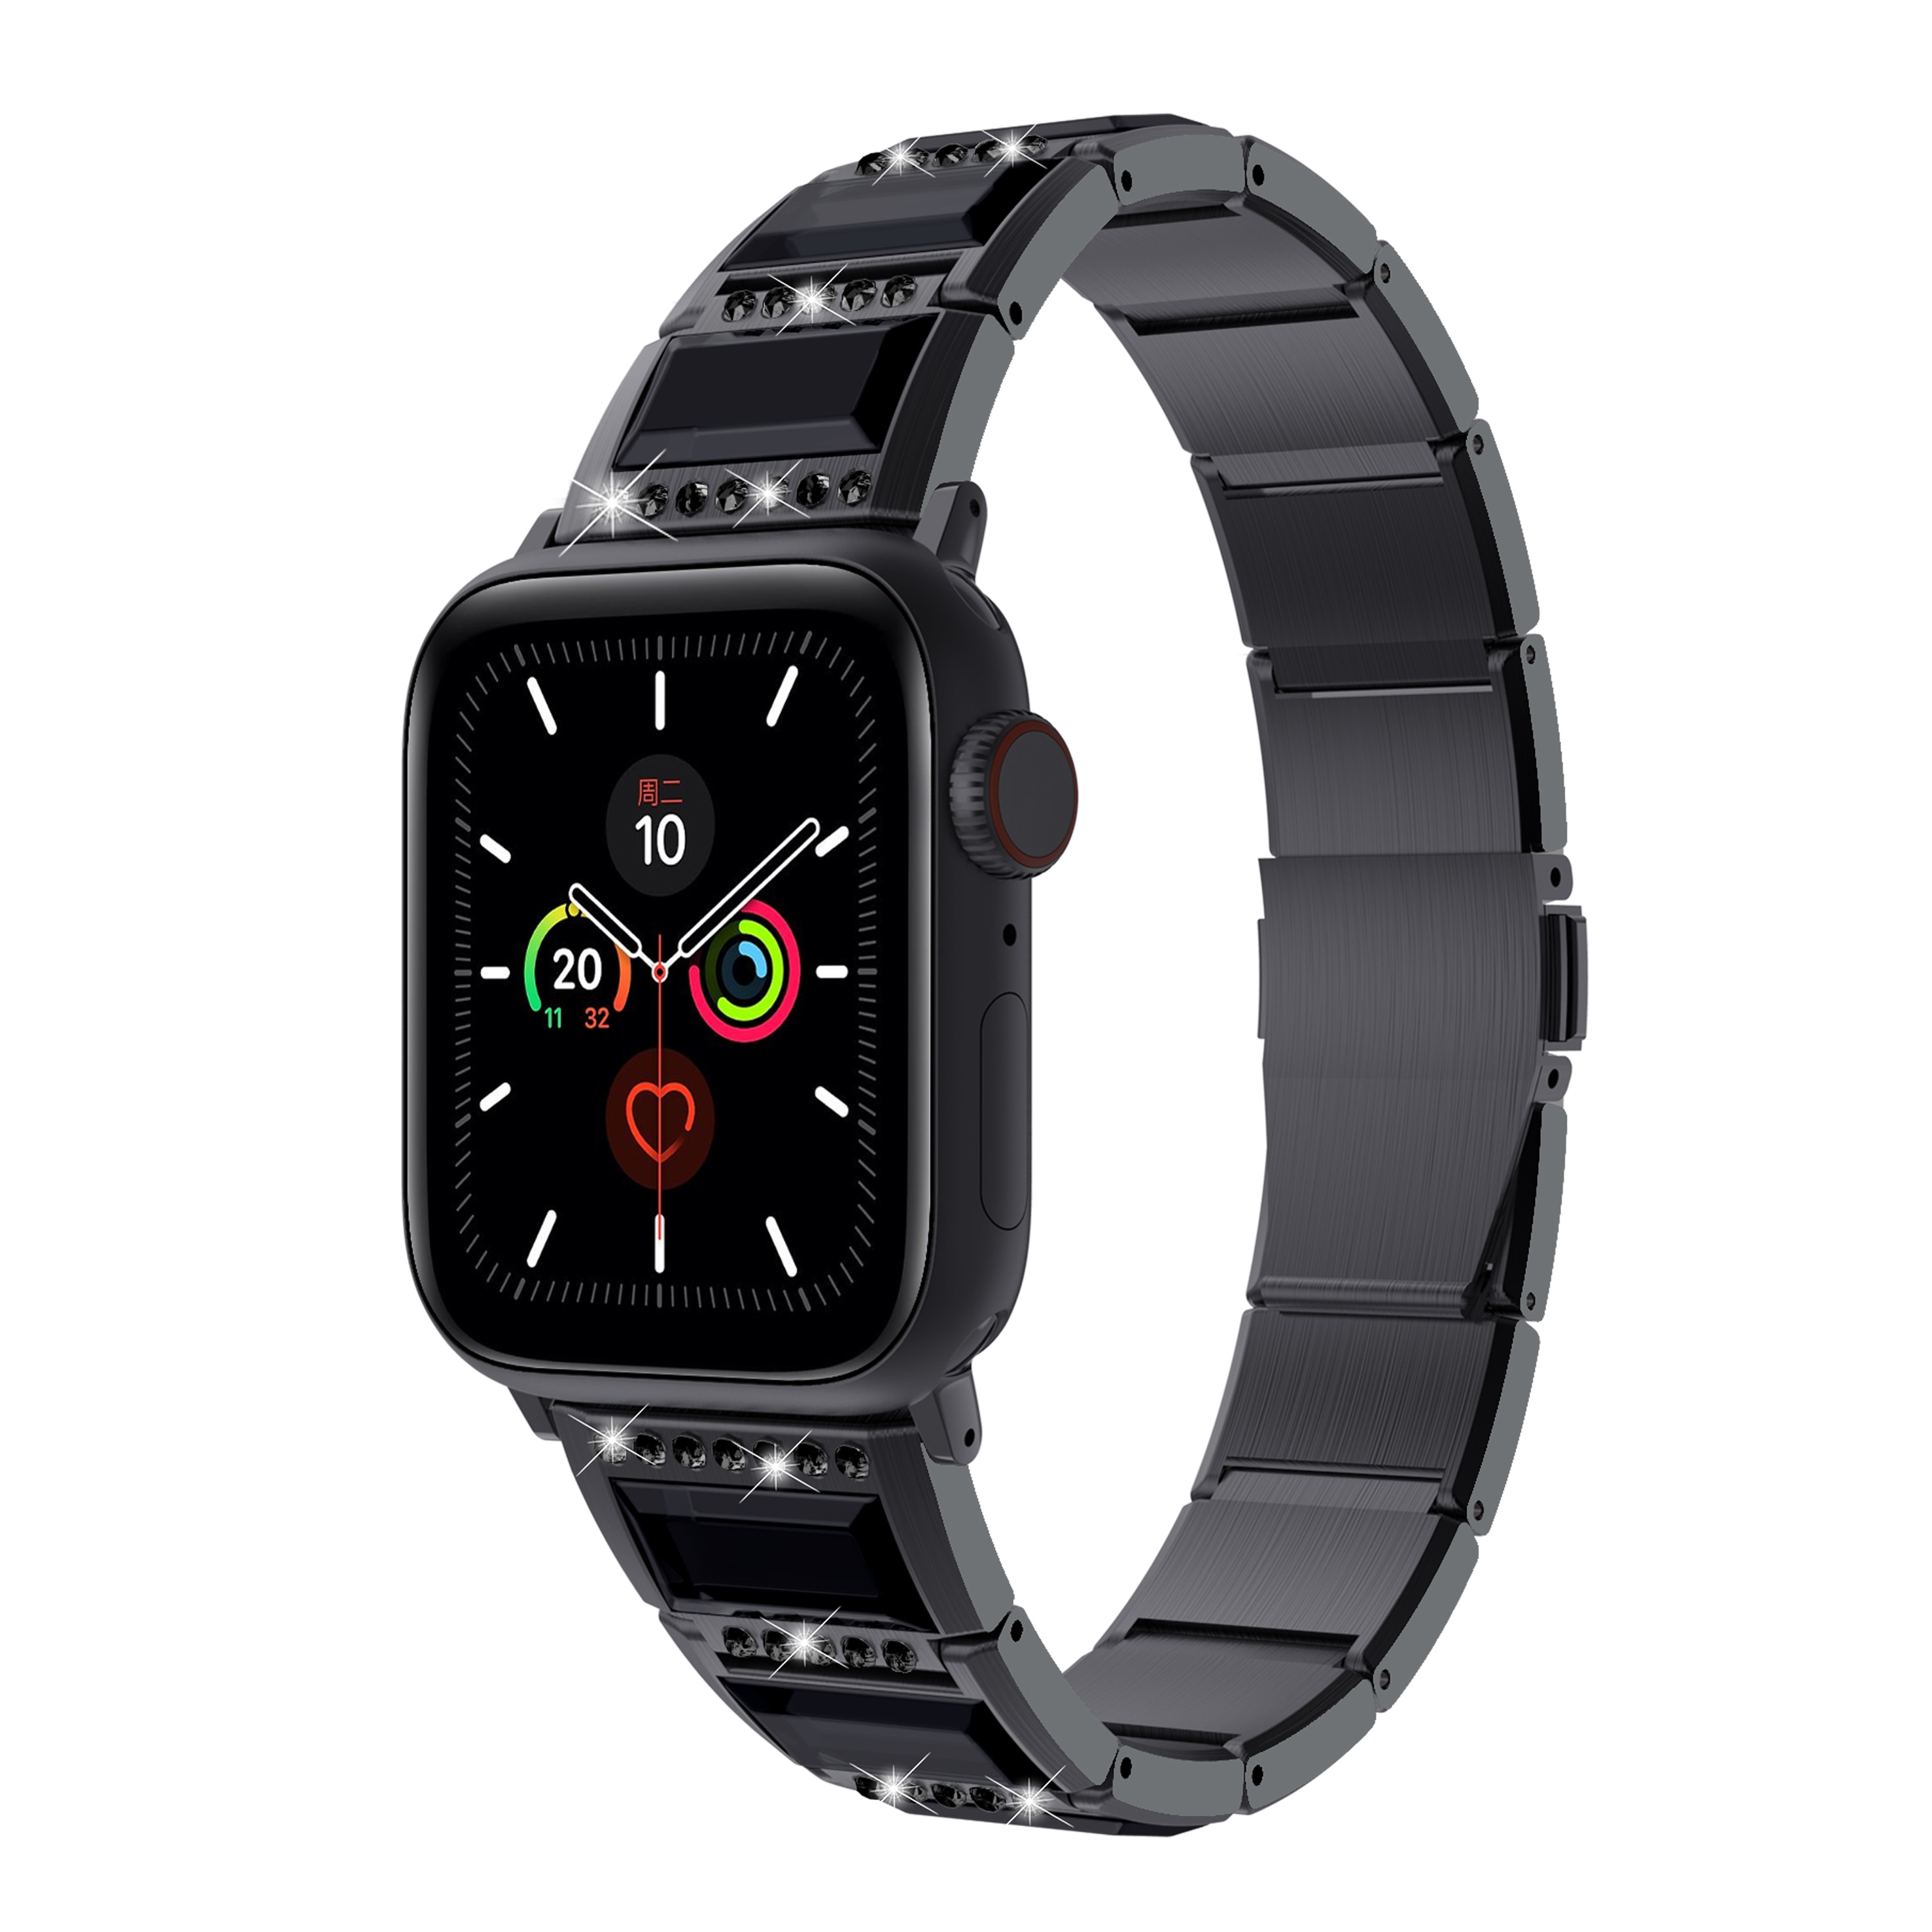 Luxury Jewelry diamond strap Compatible with Apple watch 44mm 42mm 40mm 38mm Stainless steel strap for iwatch 6 5 4 3 2 SE band enlarge